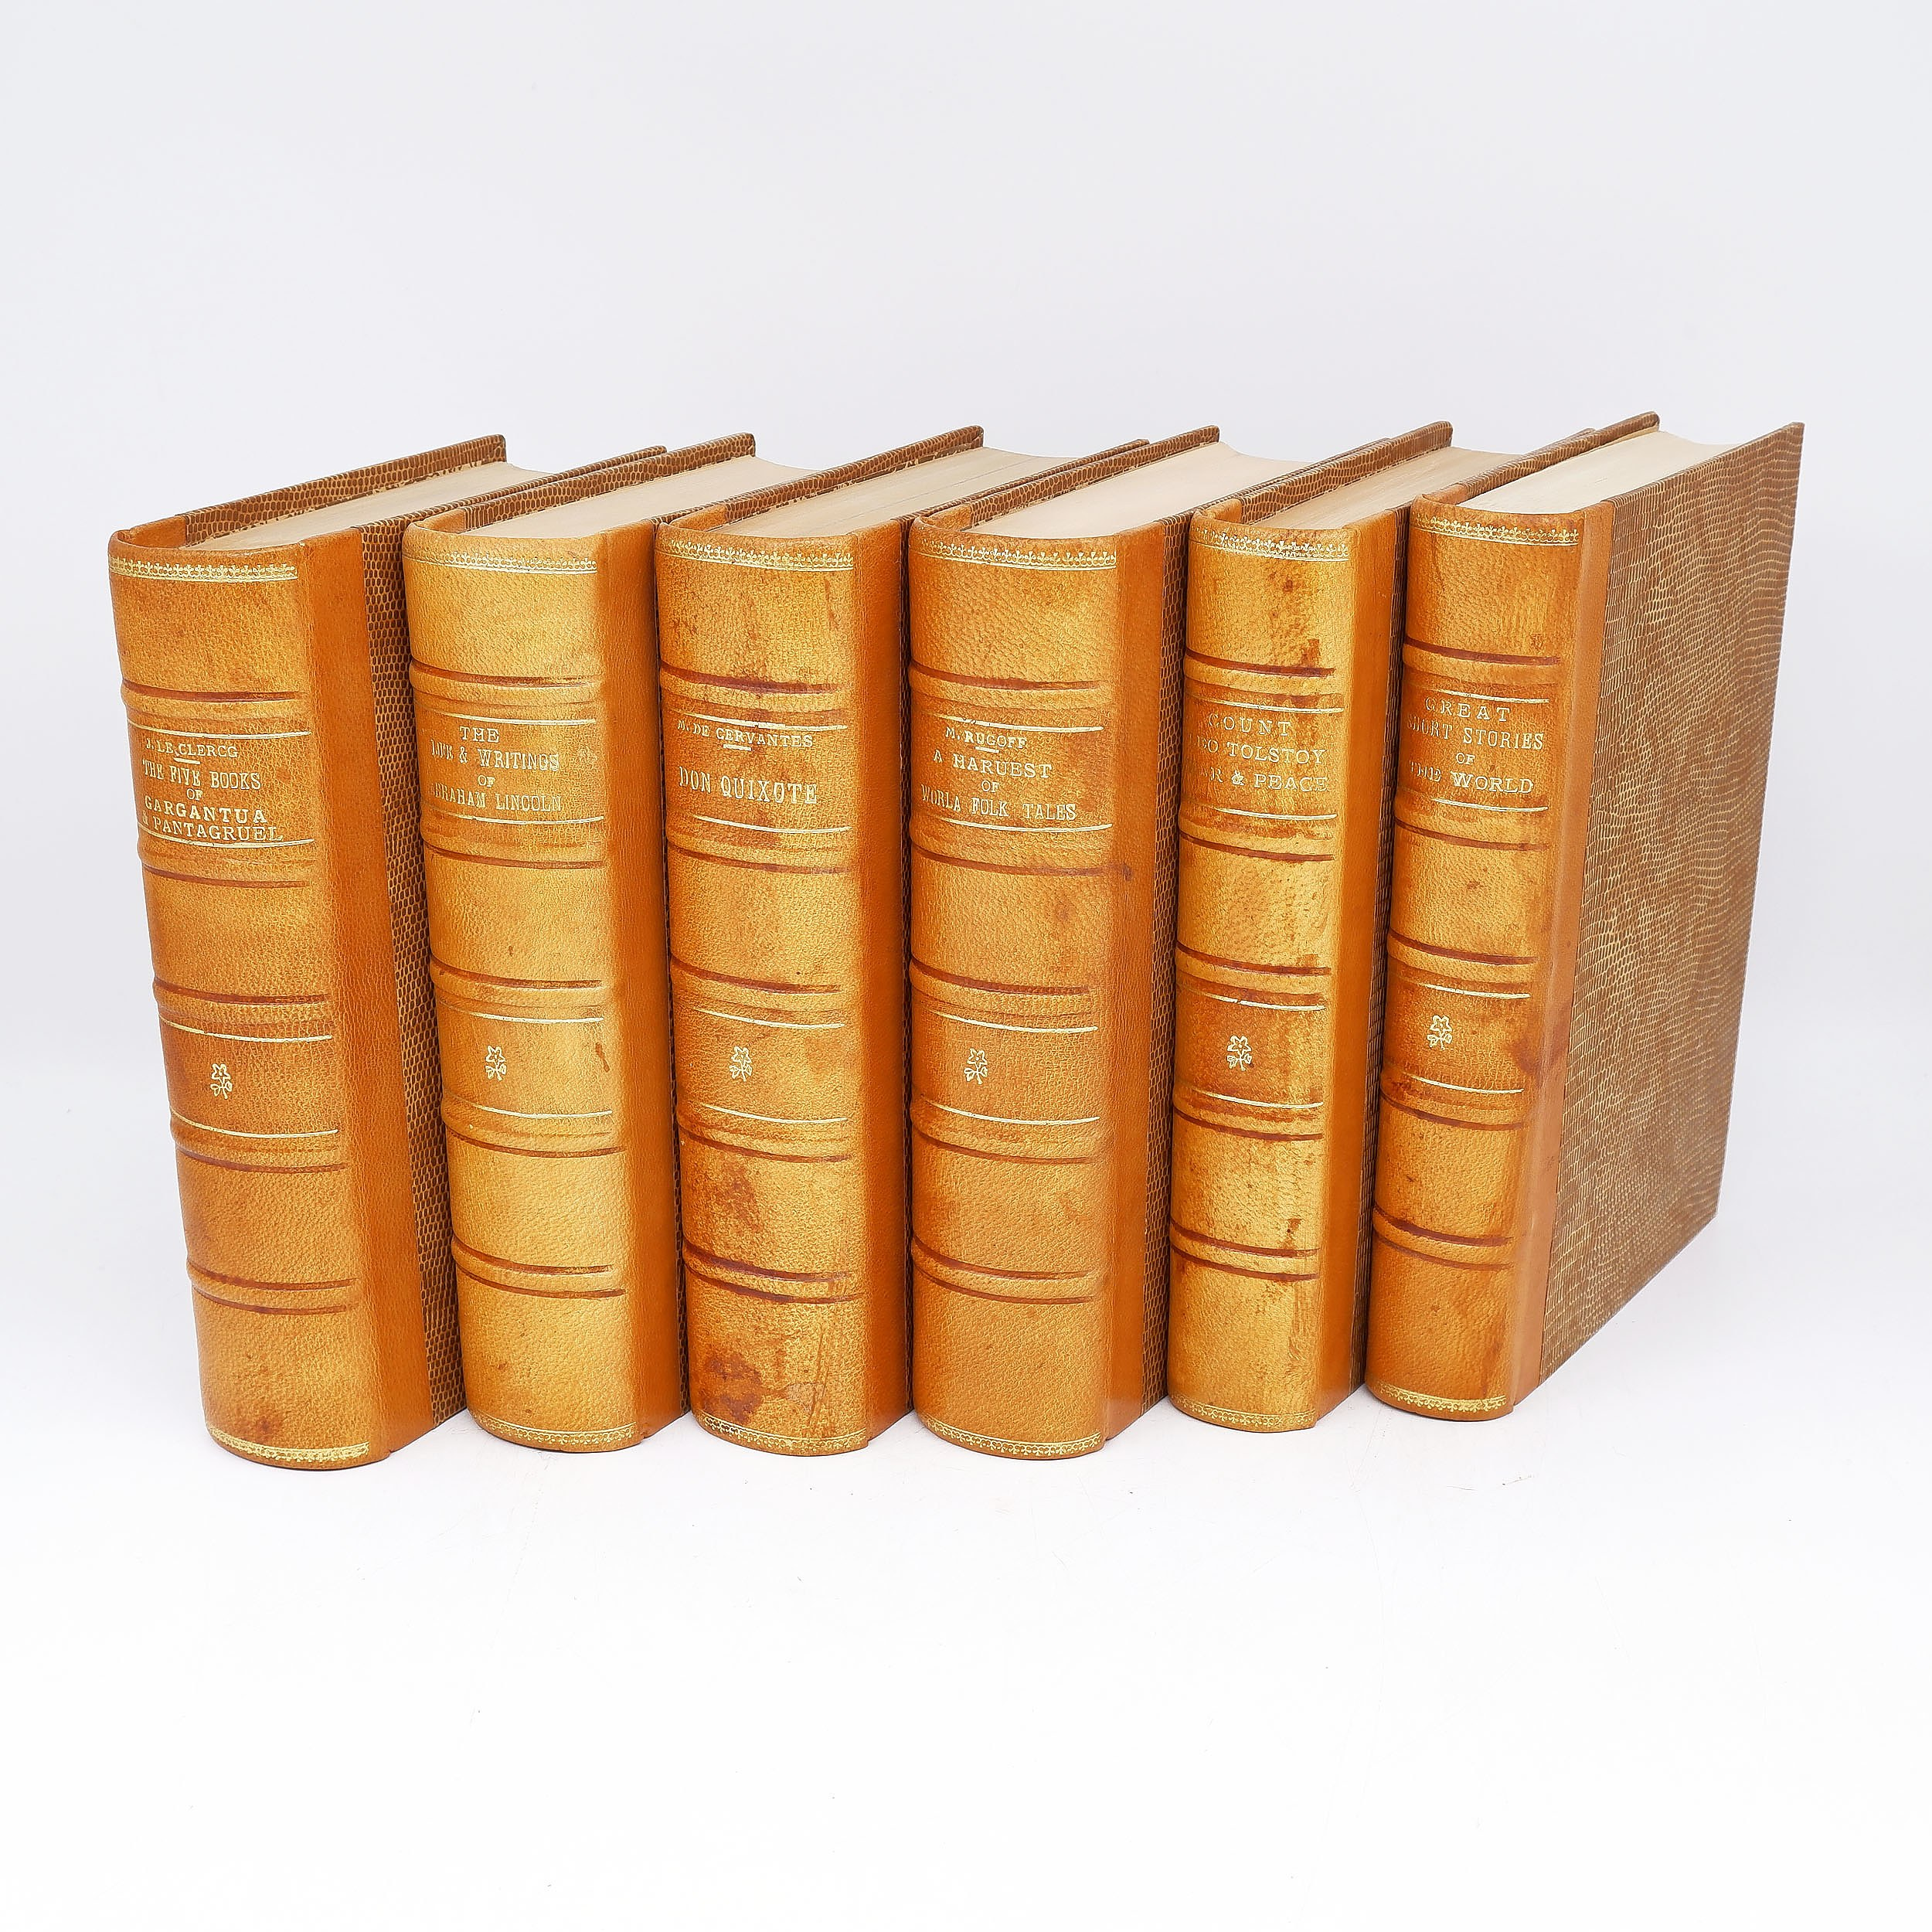 'Six Various Gilt Tooled Leather Bound Books Including Great Short Stories of the World, A Harvest of World Folk Tales and More'